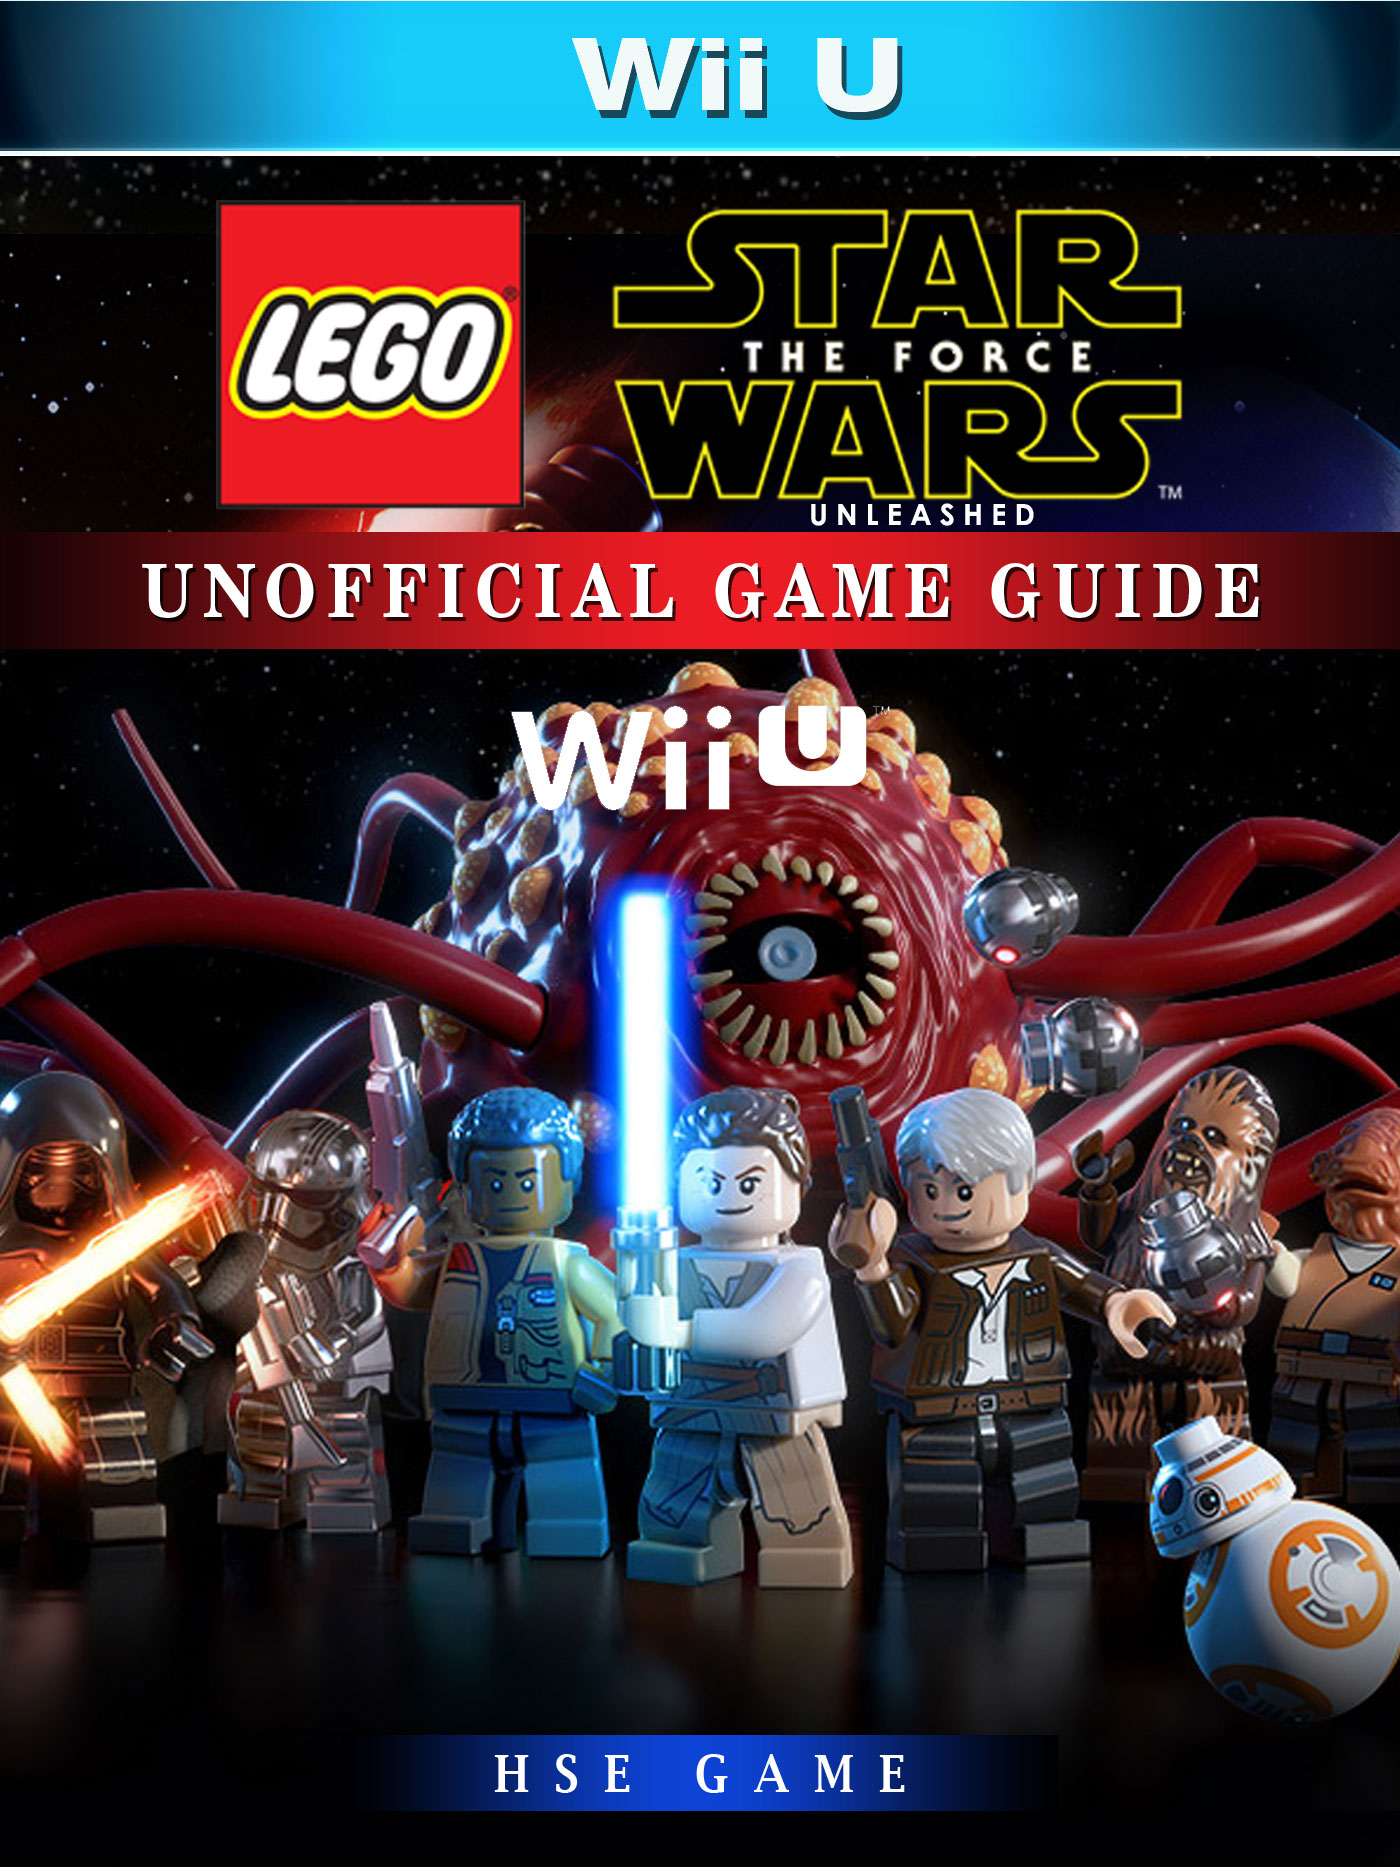 lego star wars the force unleashed wii u unofficial game guide rh ebooks2go com wii game levels wii game levels